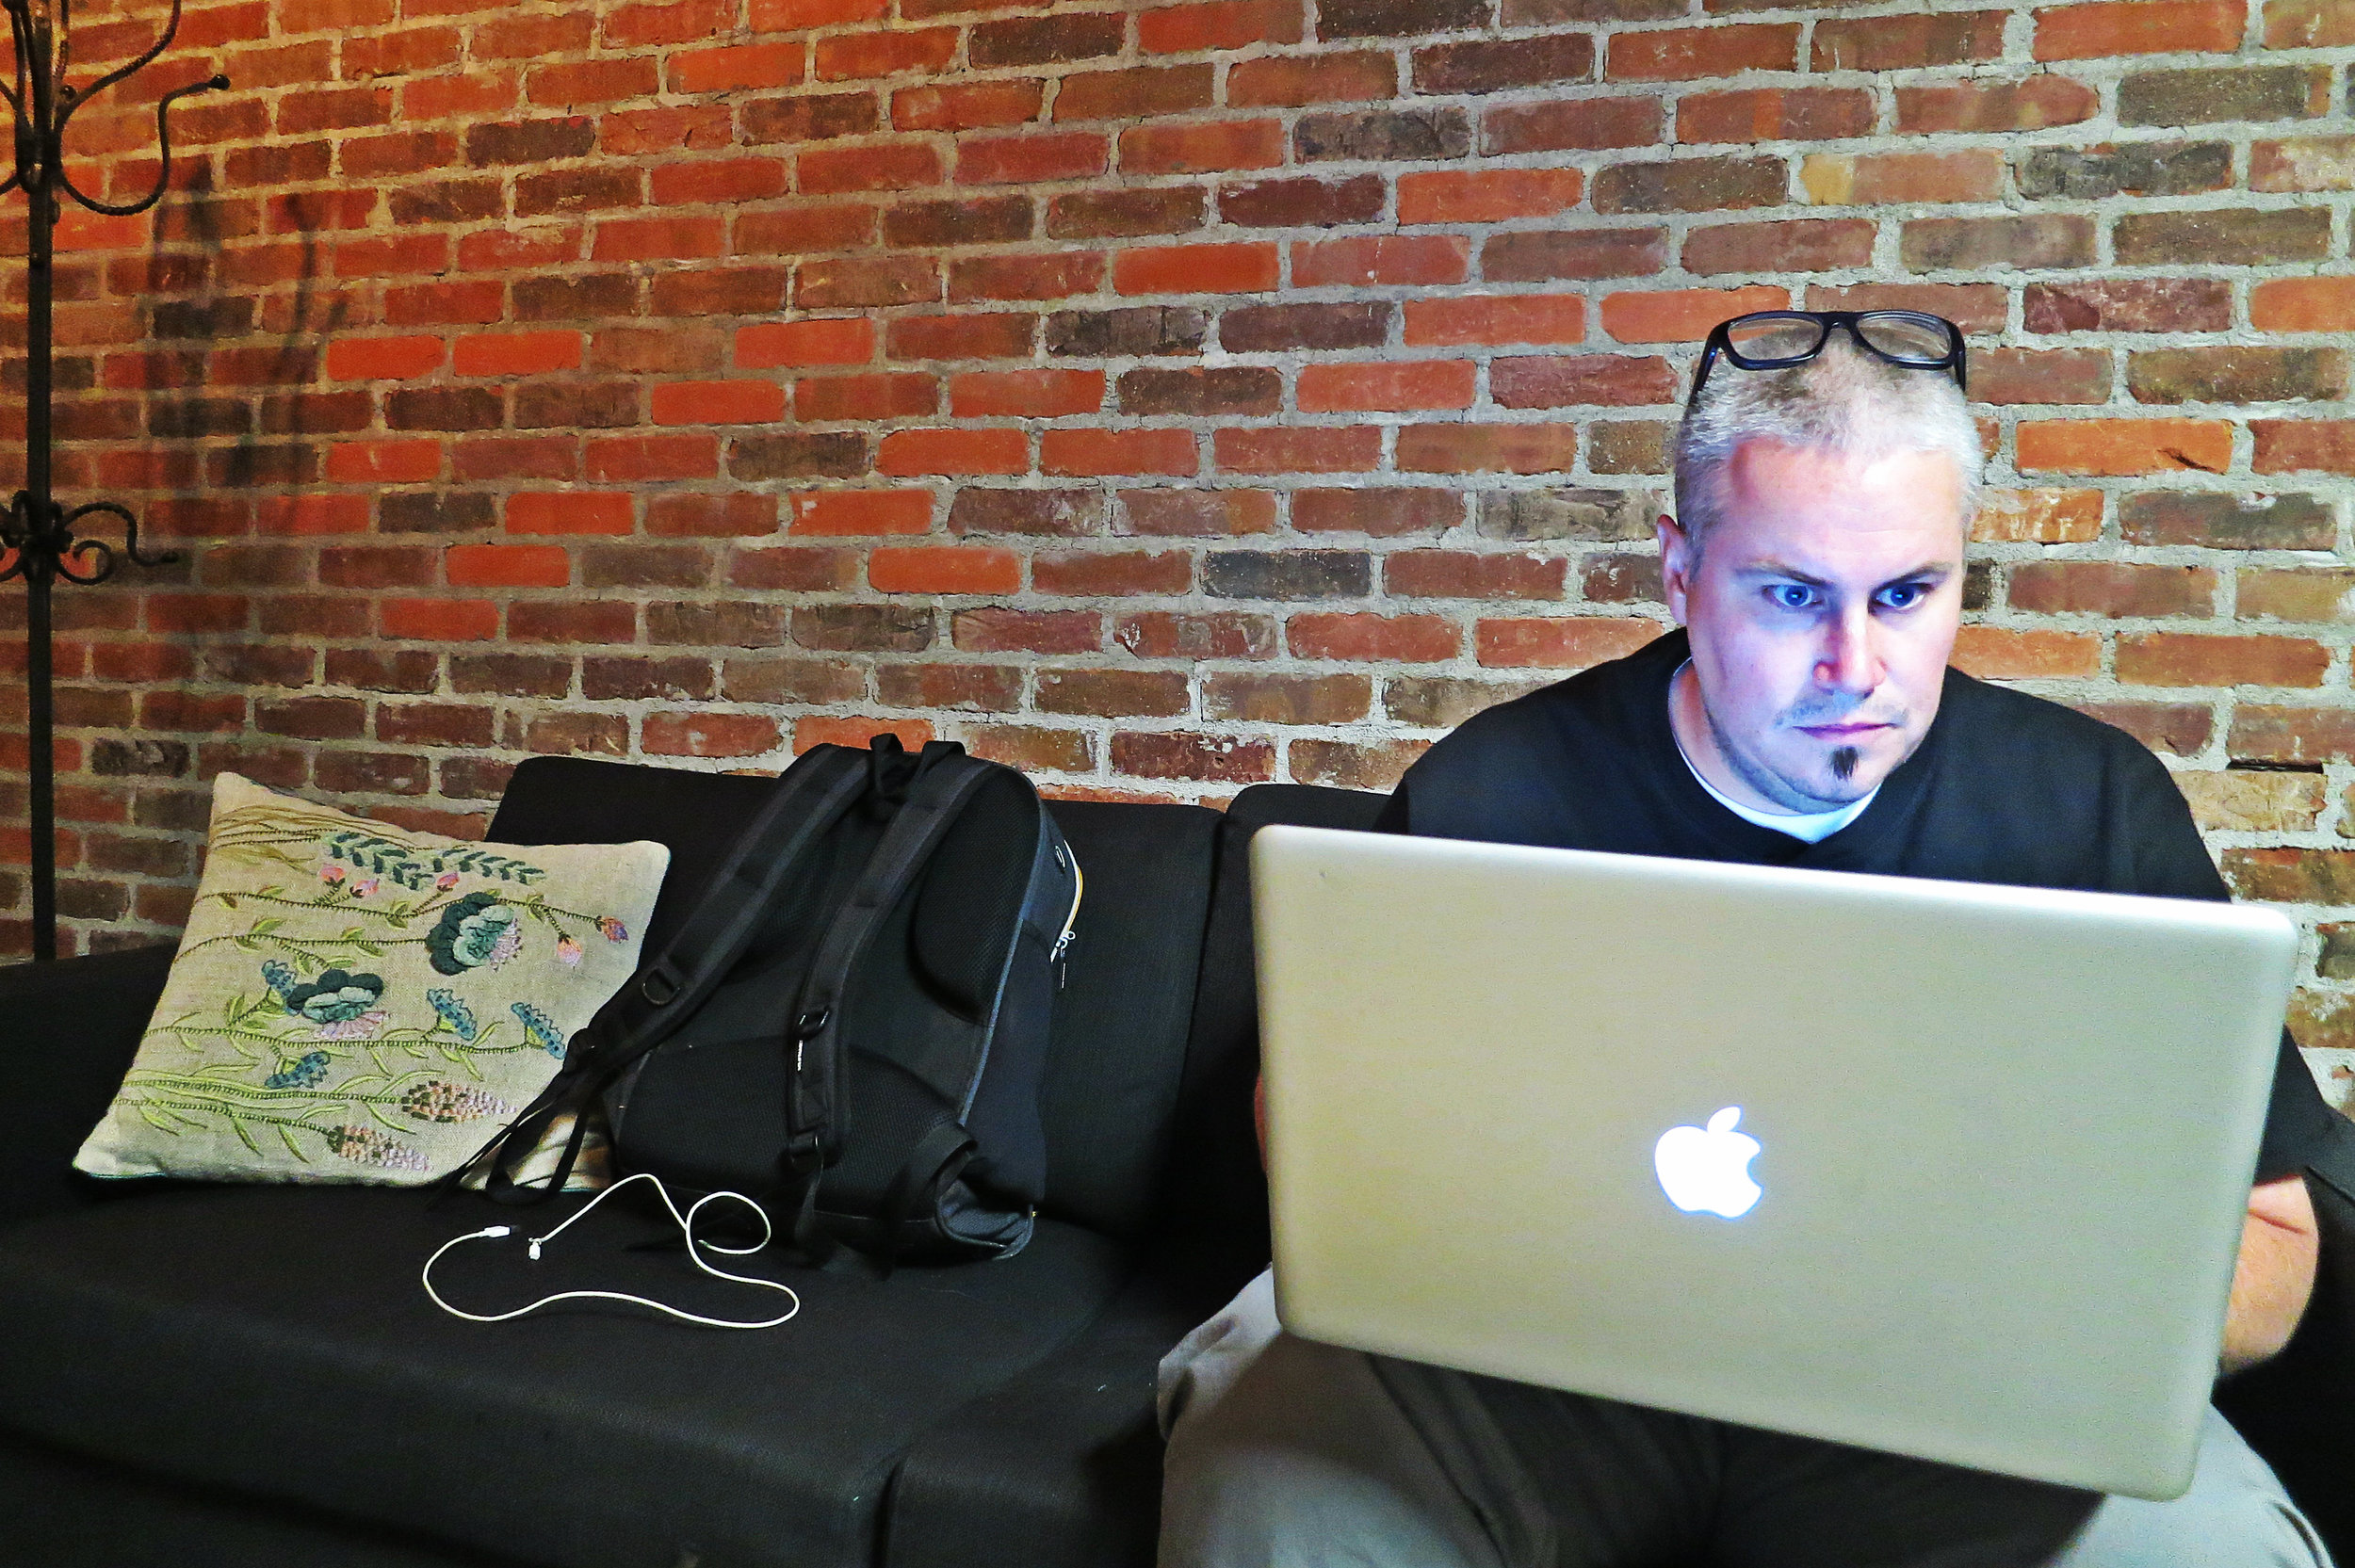 "When he's not around a van, Seth can often be found at The Basement, an underground incubator space in downtown Reno with vendors.  ""The Basement down here has become this hub where people are meeting at these tables, with people who are trying to come up with their own ideas and build new connections. Anyone can come do homework, have an important meeting, have a party, have some sort of event."""